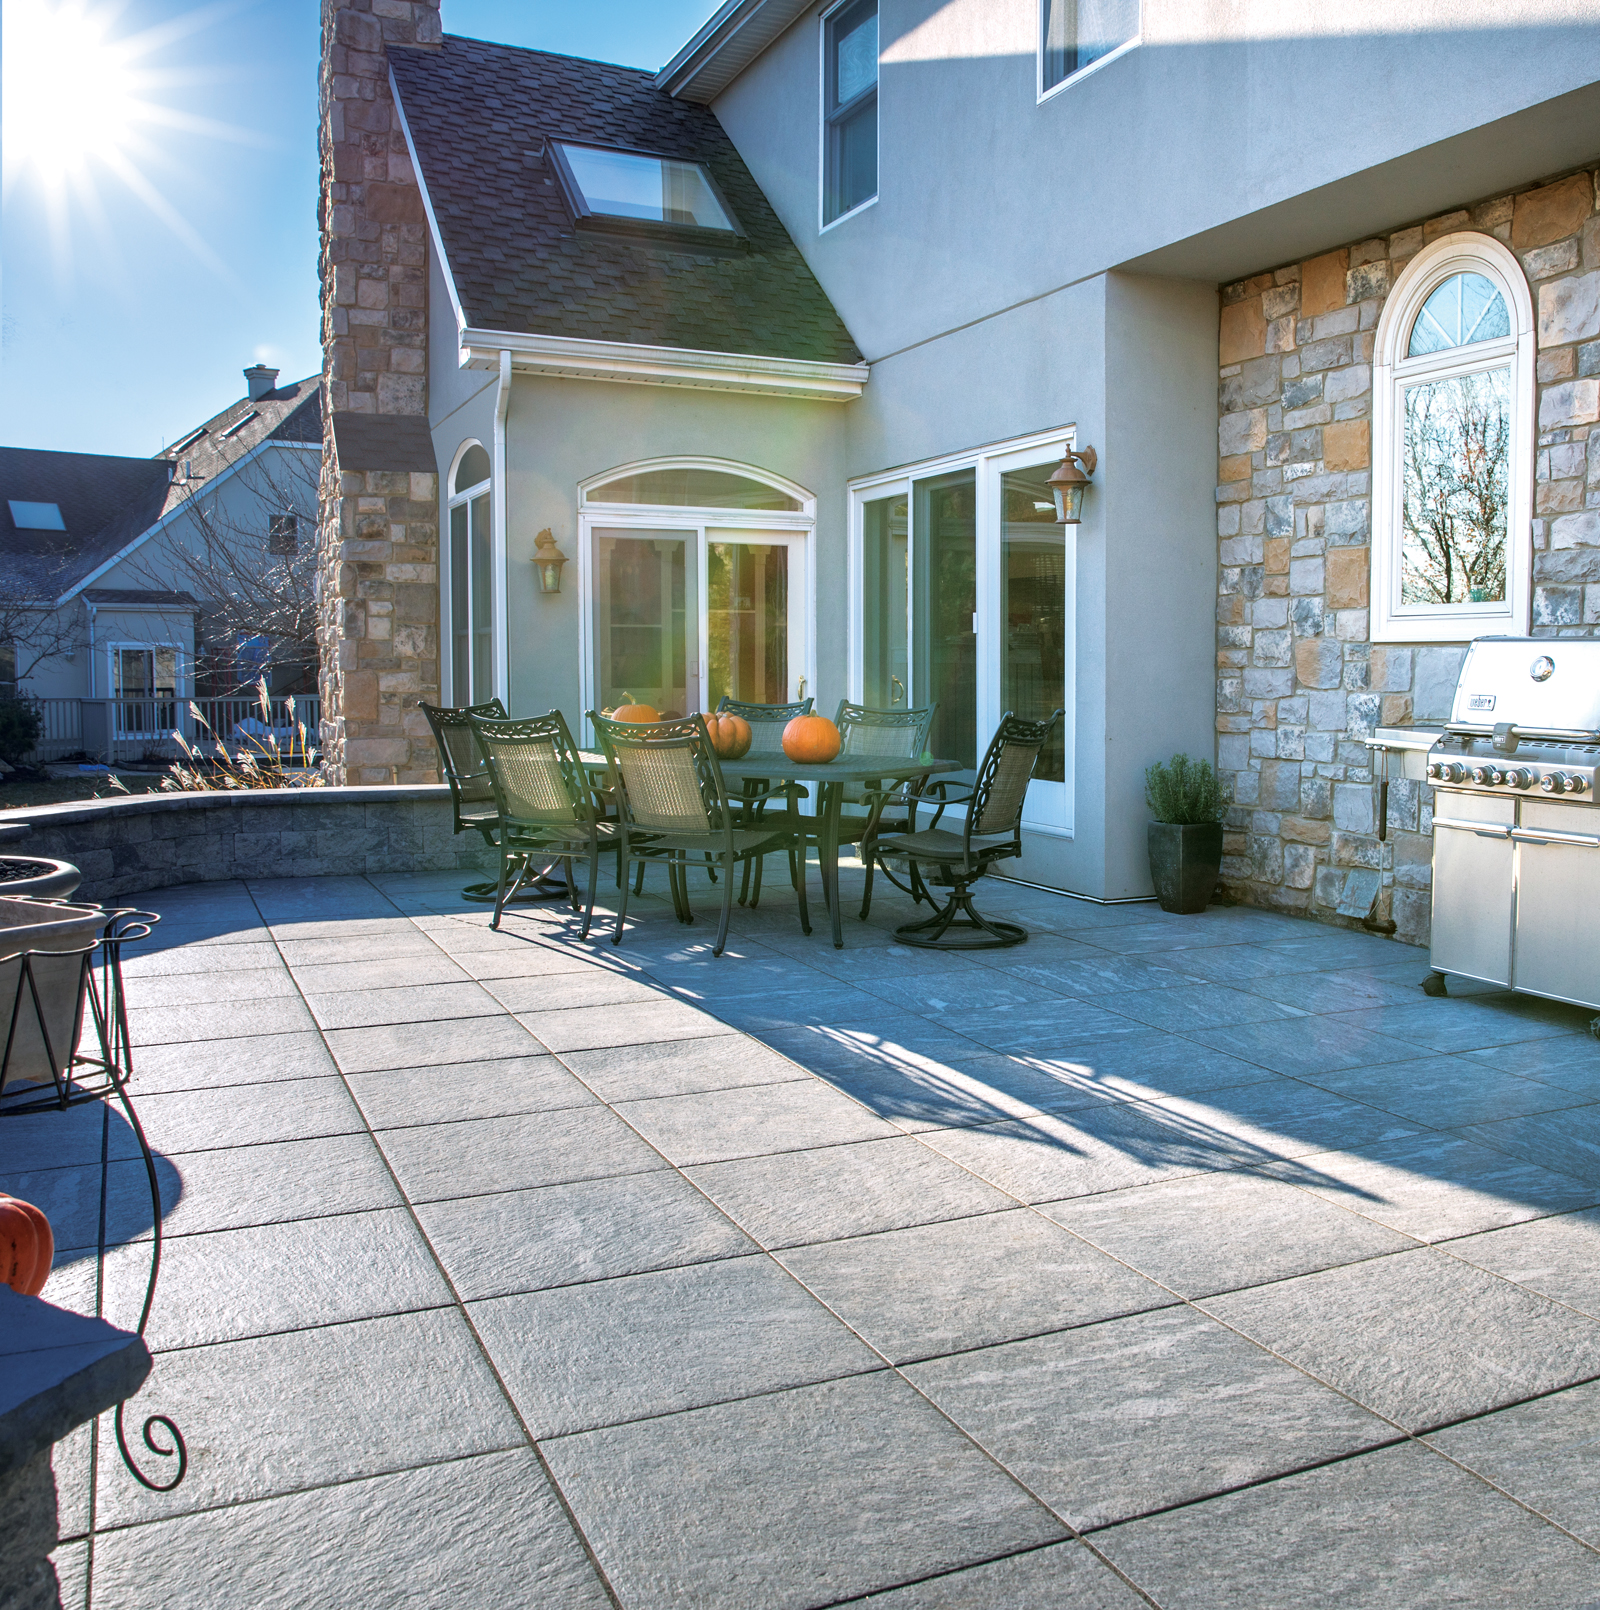 Driveway Pavers 3 Tips From Ep Henry About Porcelain Paver Tiles: They